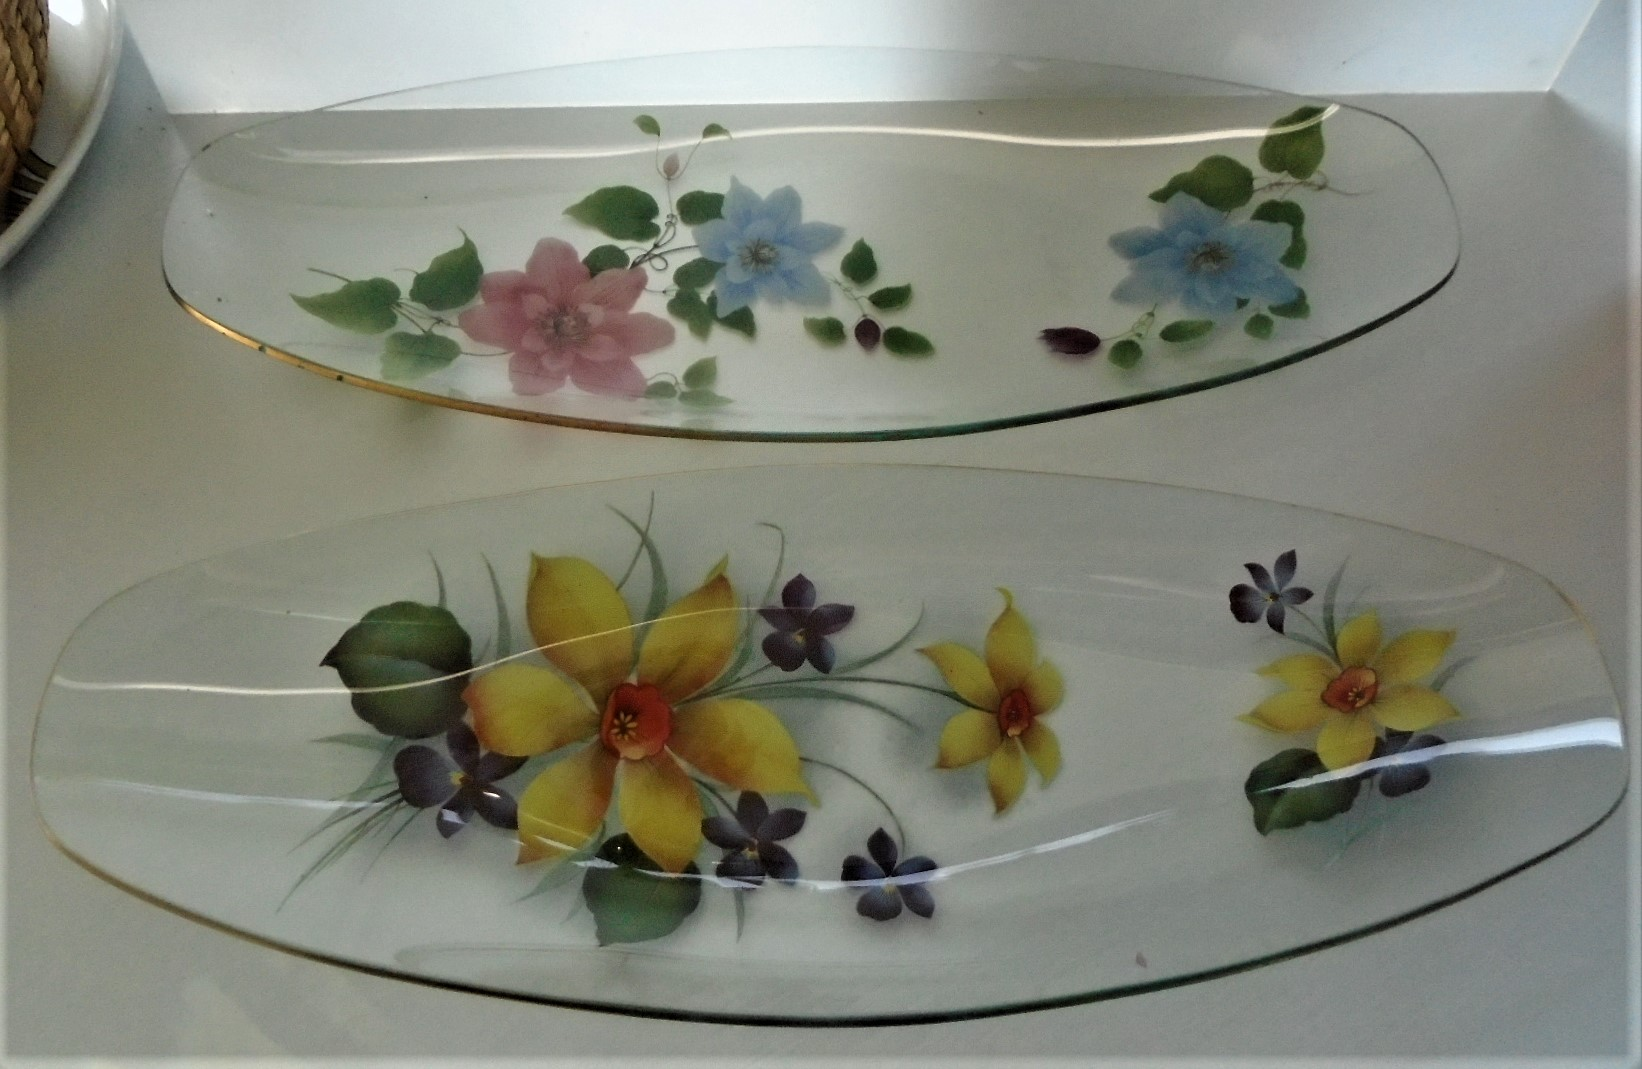 Pair of early 1970s elliptical dishes from English glass maker Chance.